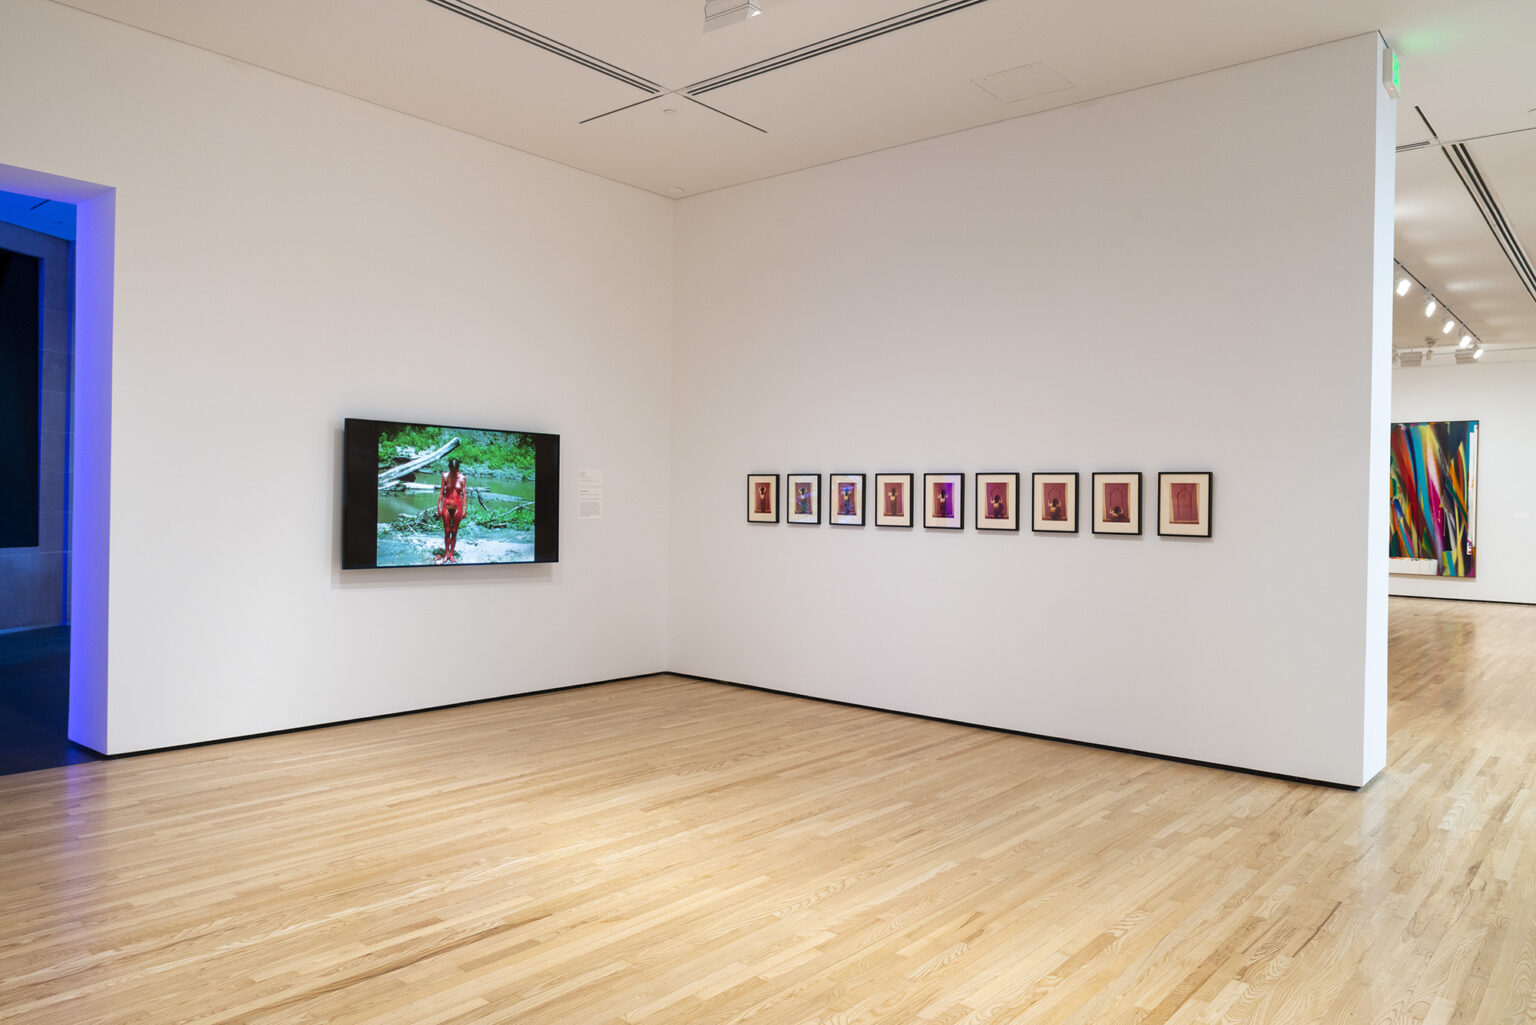 Installation view, Ana Mendieta: Blood Inside Outside. Photo by Mitro Hood